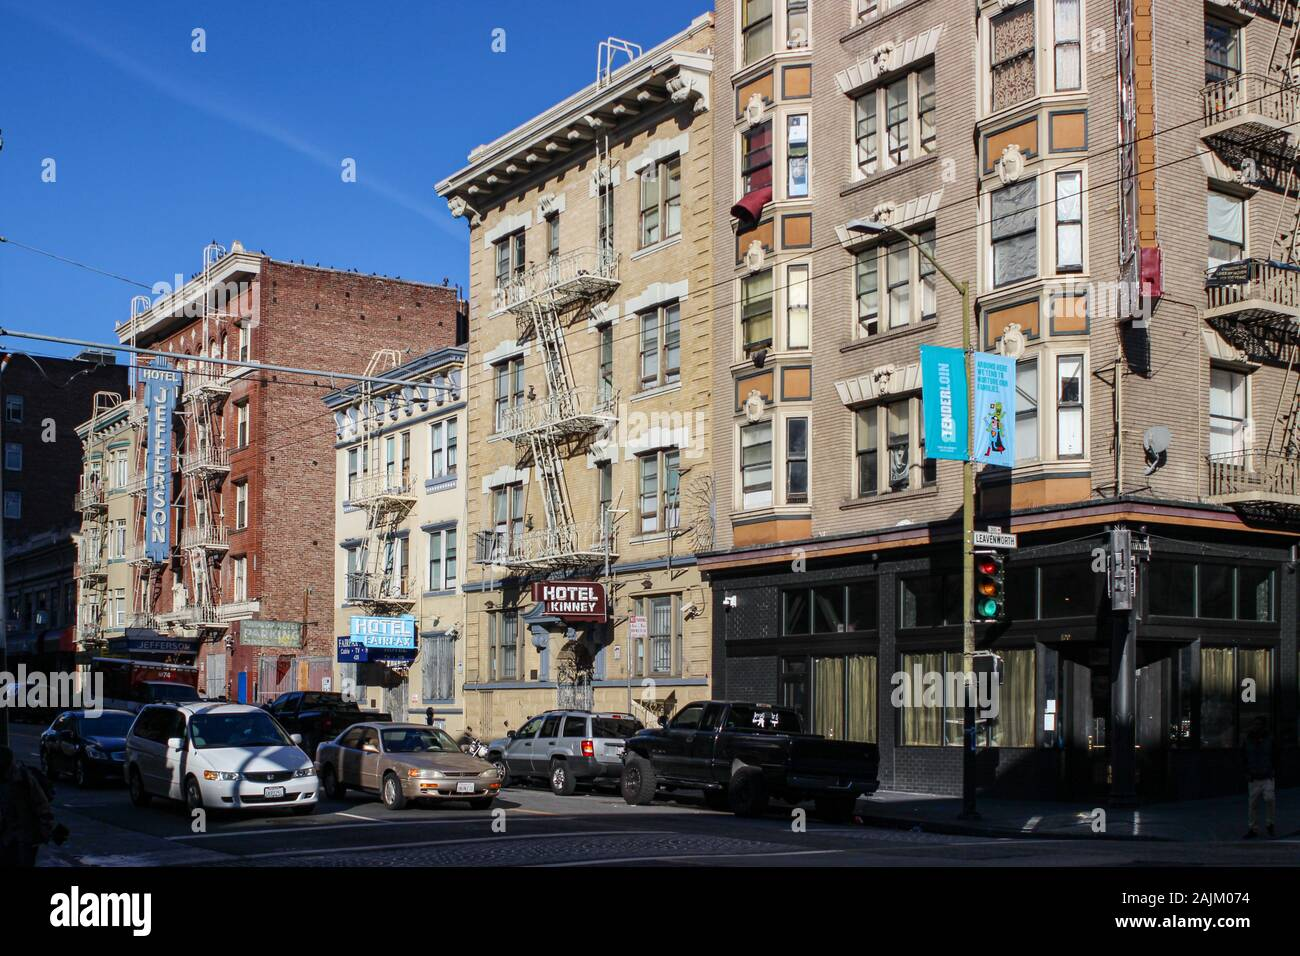 Tenderloin district street view with supportive housing hotels in San Francisco, United States of America Stock Photo